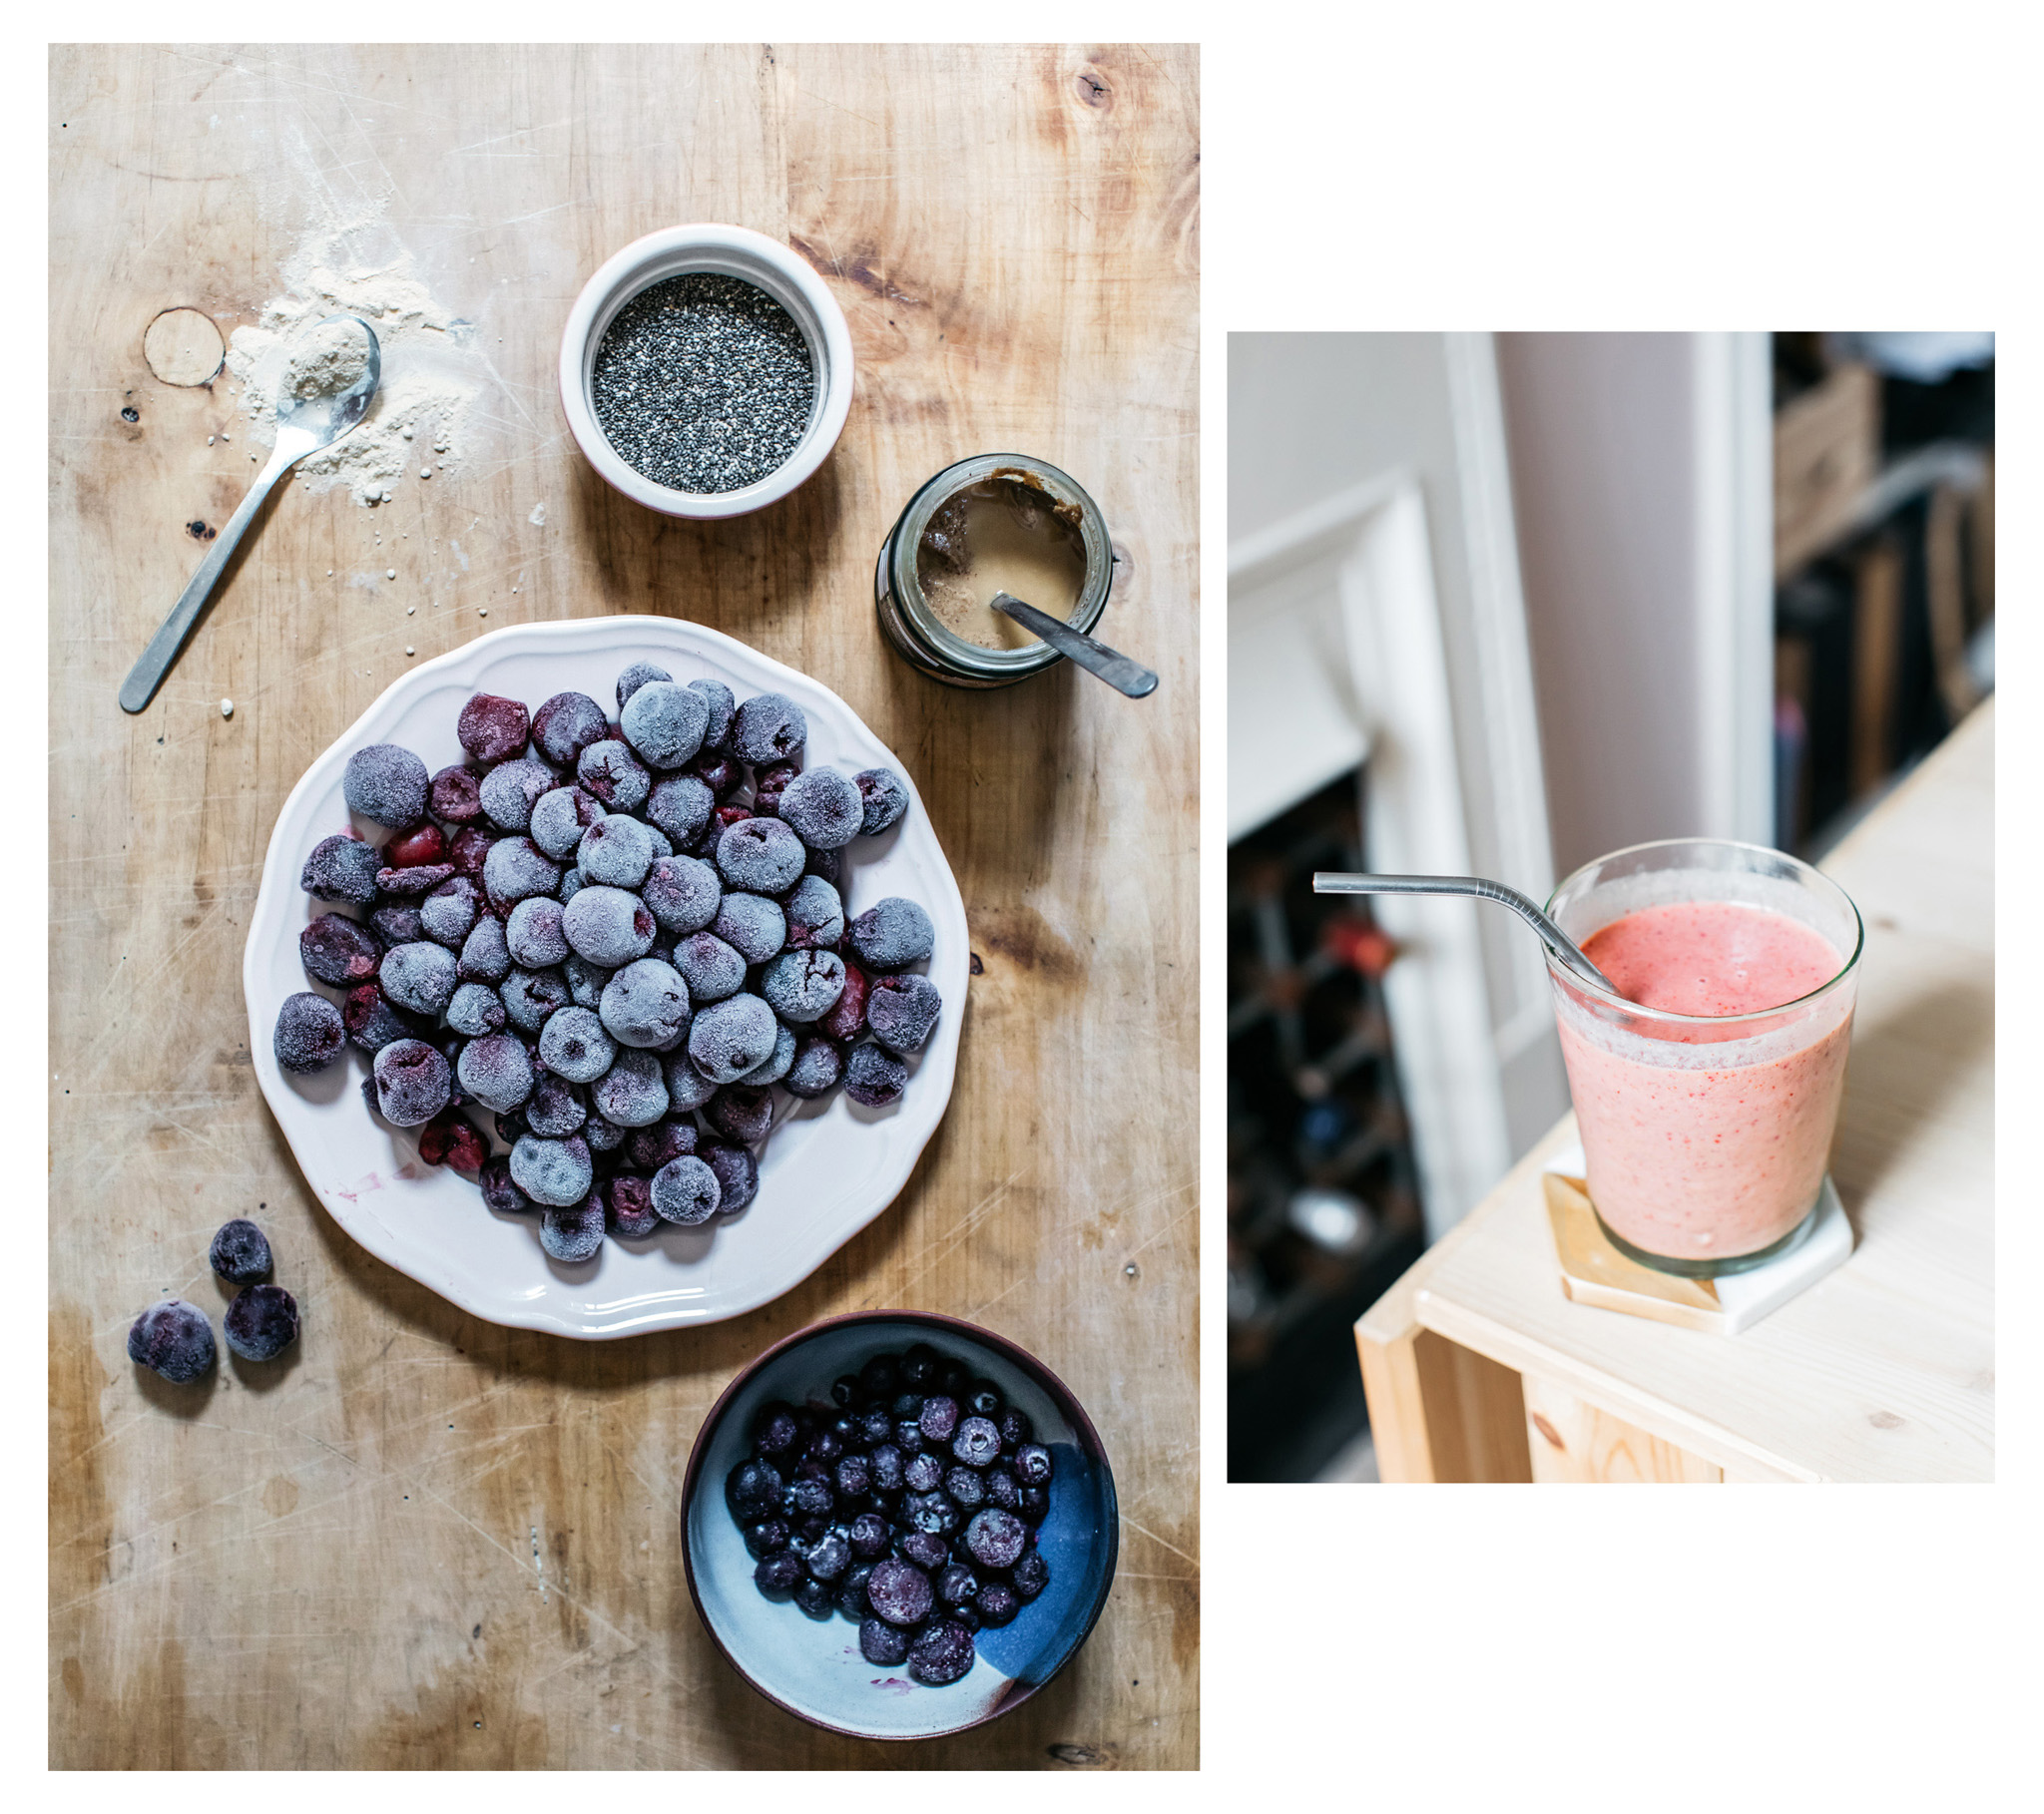 Cherries are full of nutrition and make a great breakfast smoothie that regulates blood sugar and provides dietary fibre. Recipe below.